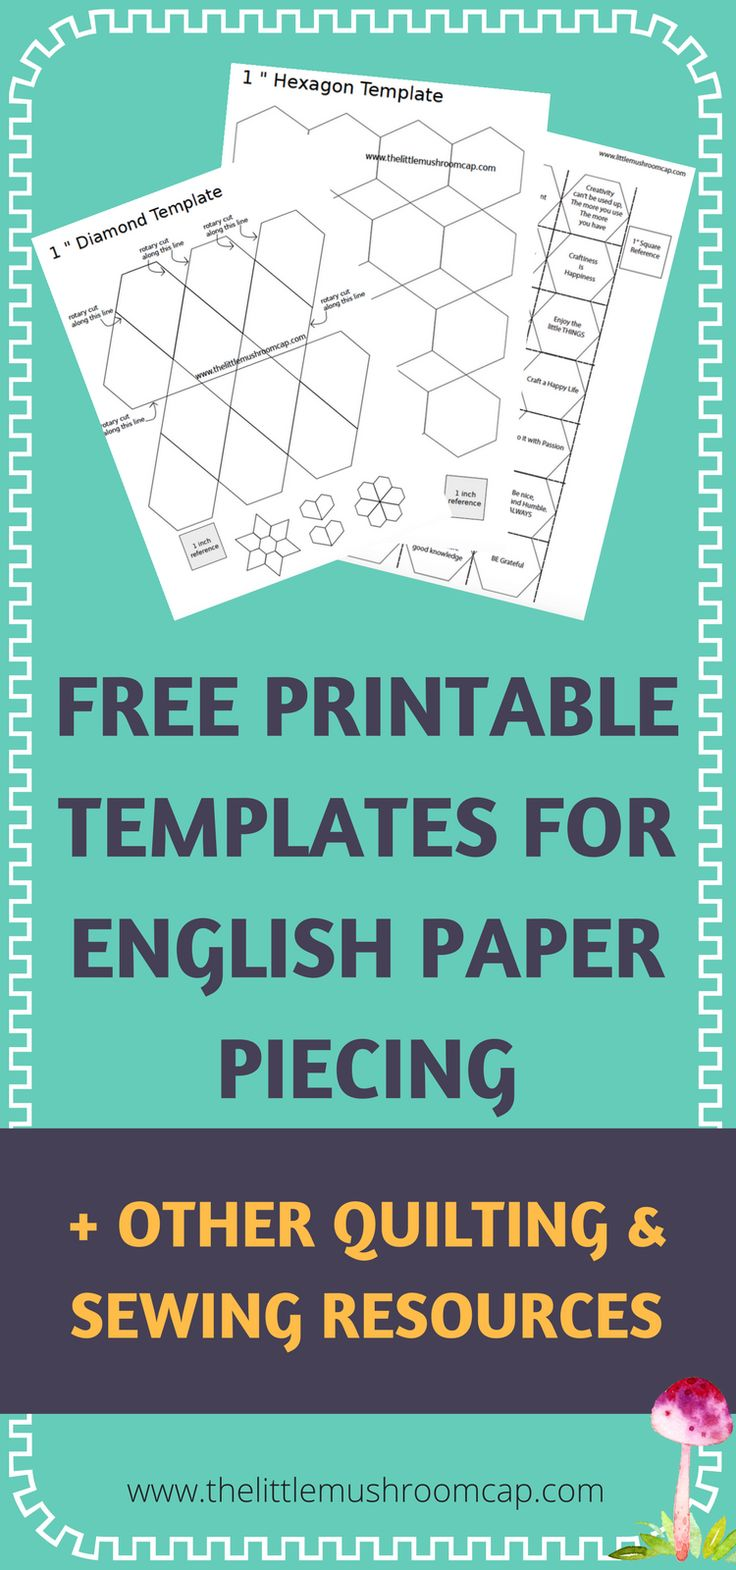 Easy to use and FREE!   English Paper Piecing Template, Free downloadable templates to print and use, plus more in the resource library.